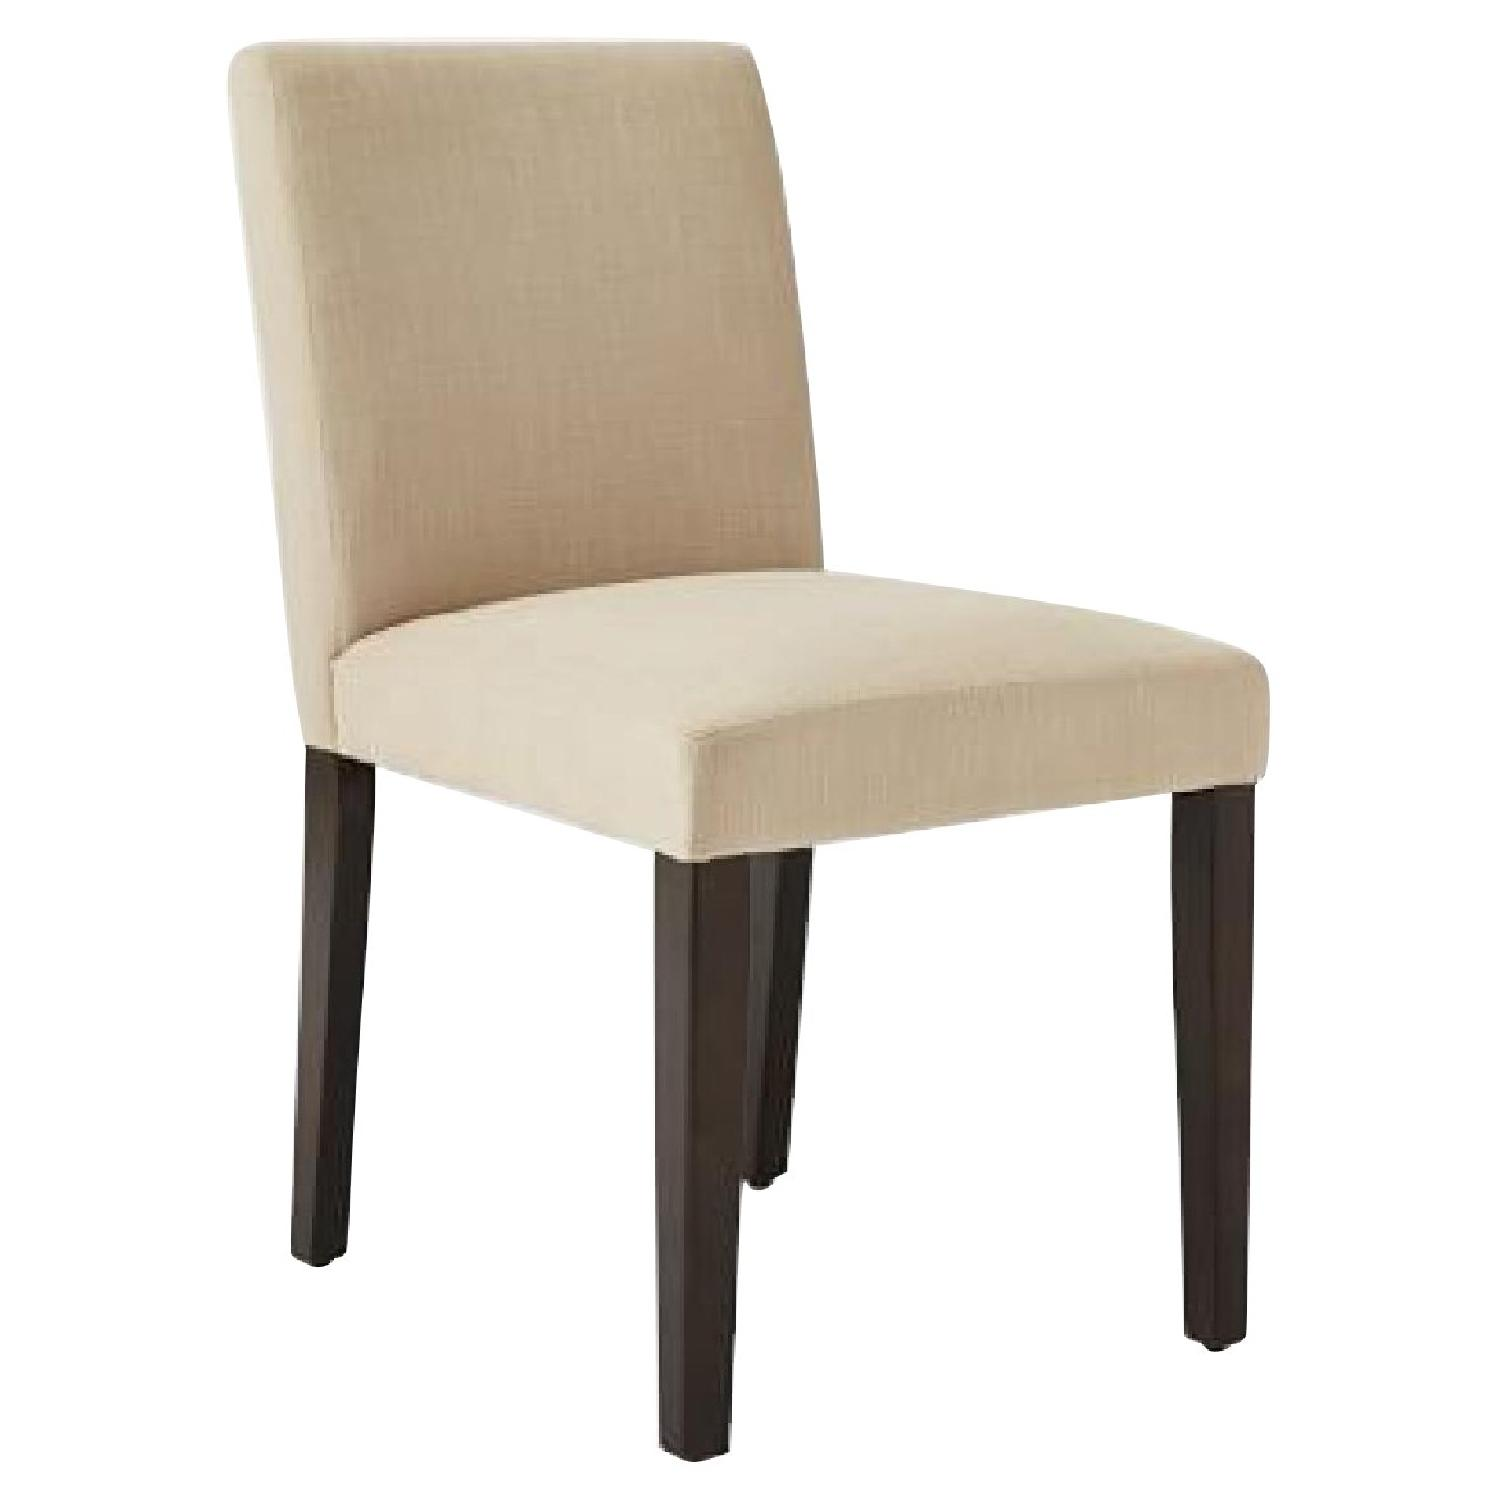 West Elm Upholstered Natural Dining Chairs Aptdeco